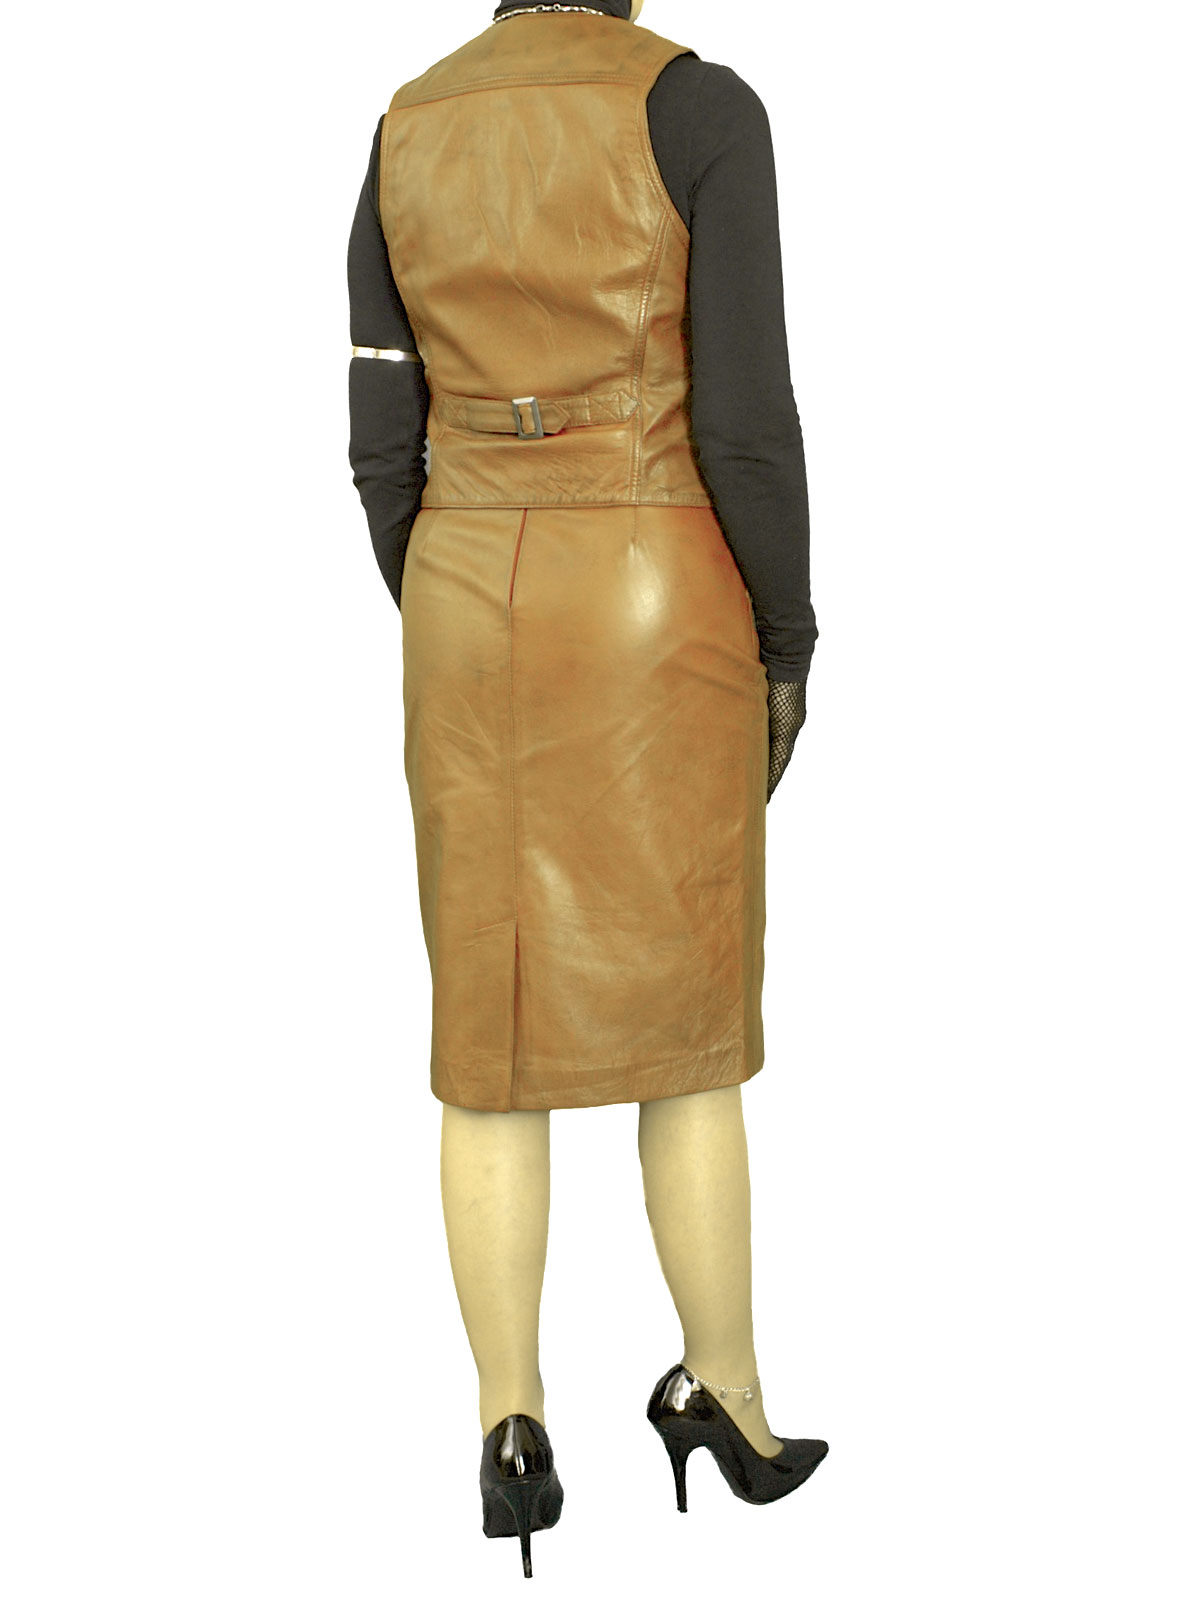 womens leather pencil skirt waistcoat tout ensemble